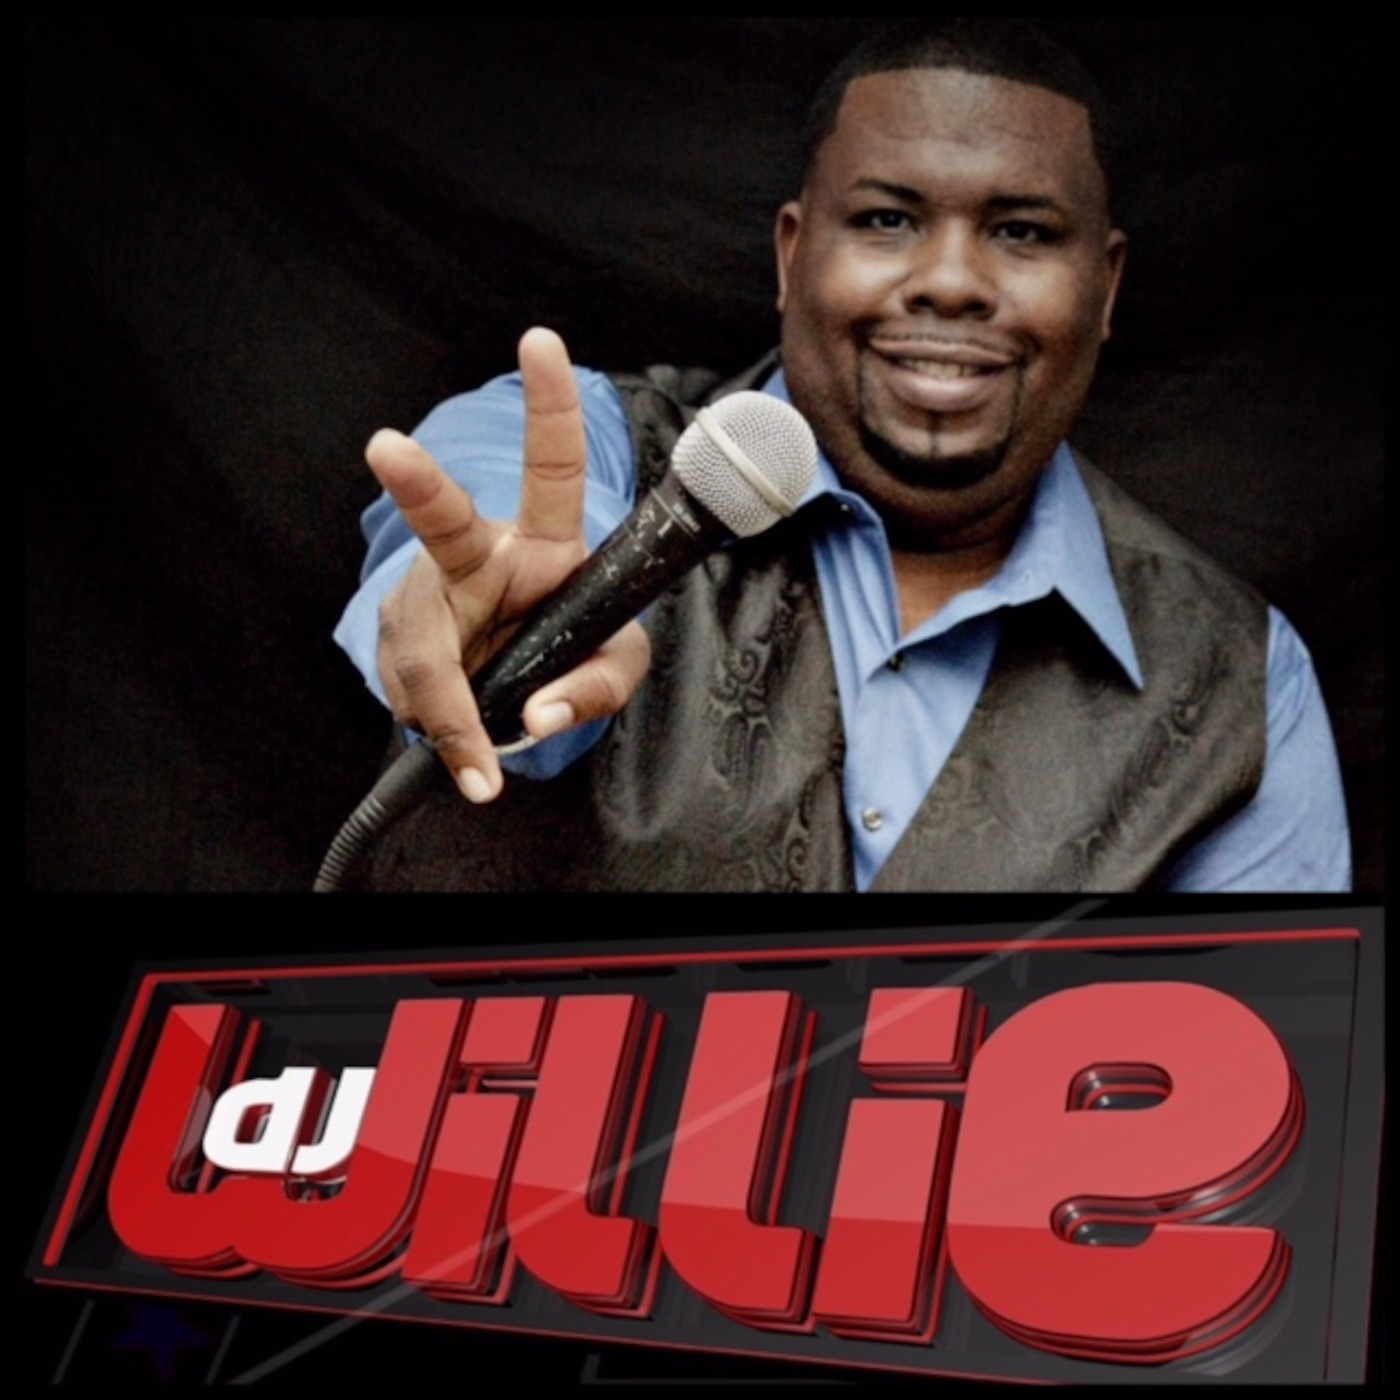 DJ Willie Podcast